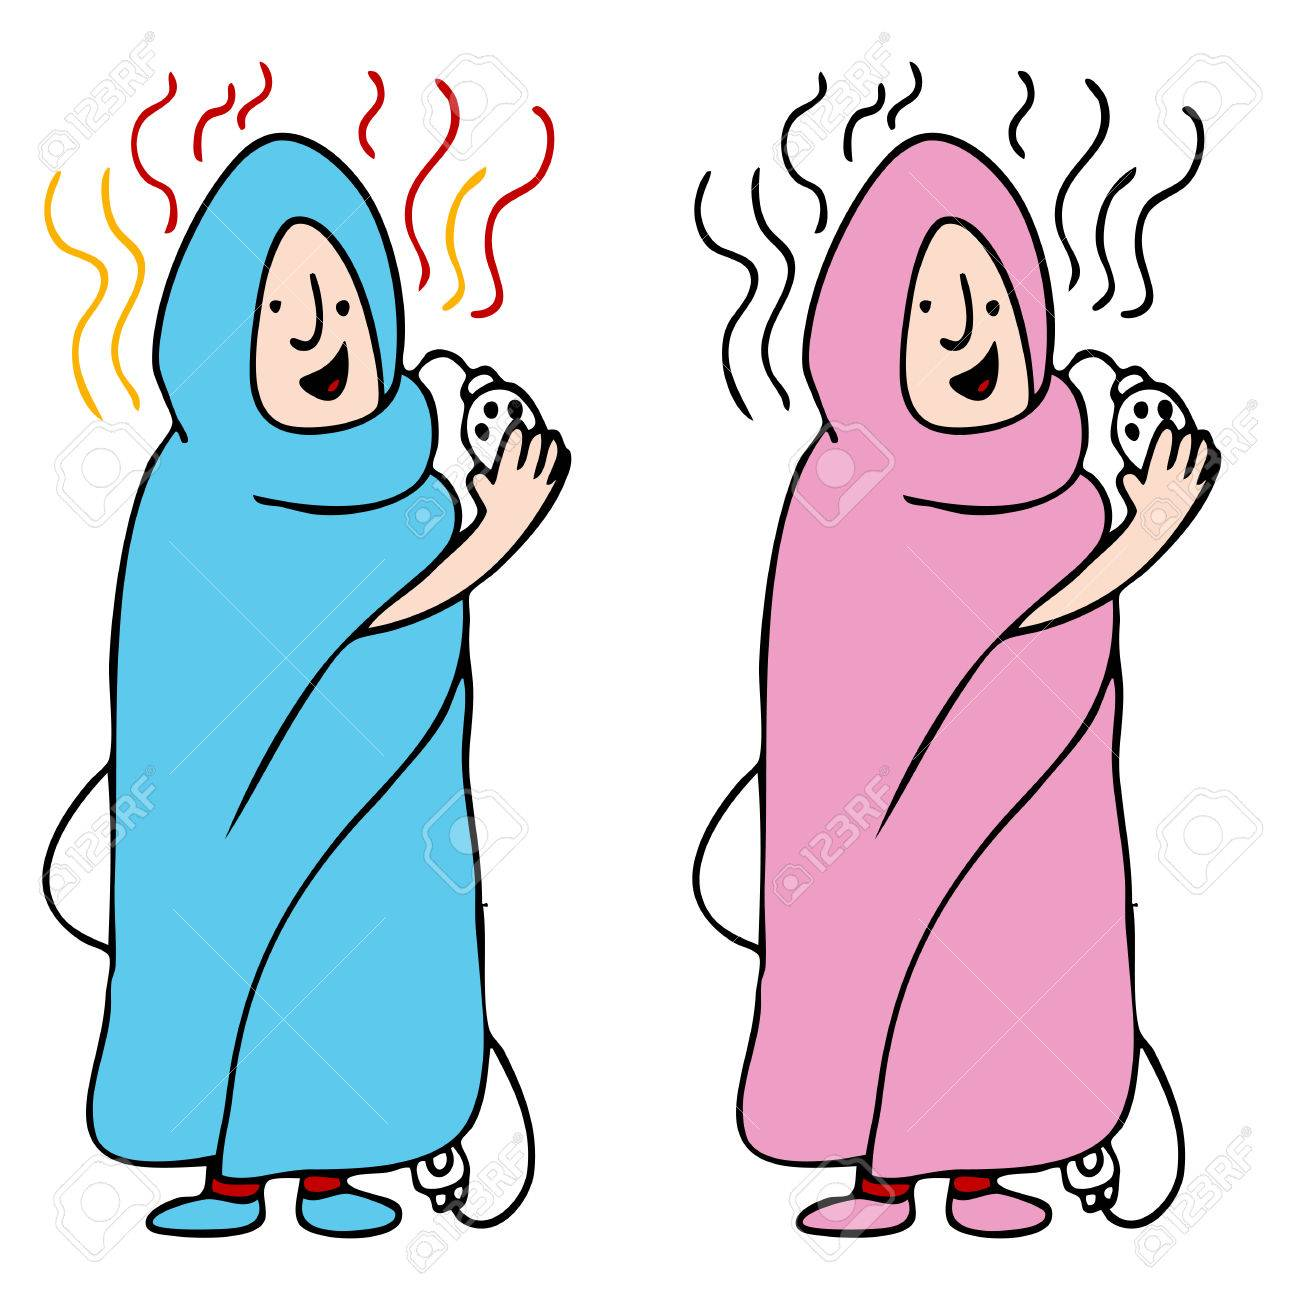 An image of a man and woman using an electric blanket. - 8525376